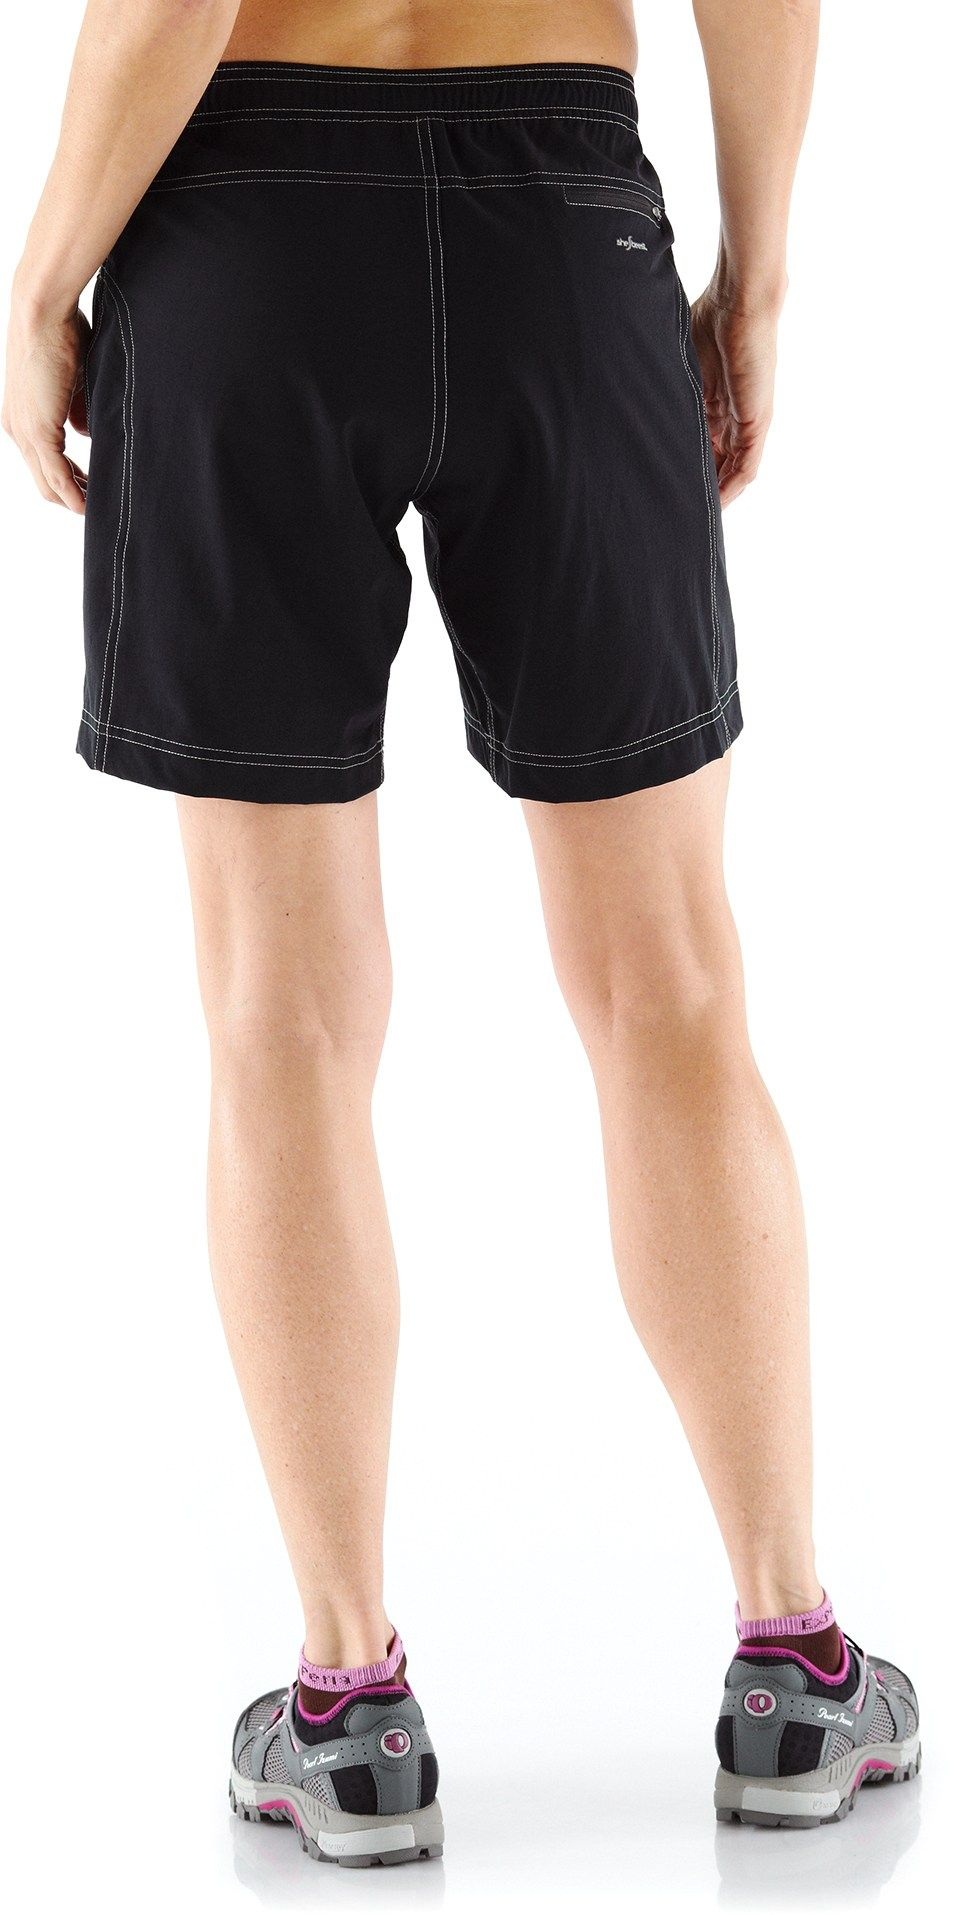 6b2d75cdd The Shebeest Breezer board bike shorts with removable liner shorts are  2-for-1 for multisport and apres-sport use.  REIGifts